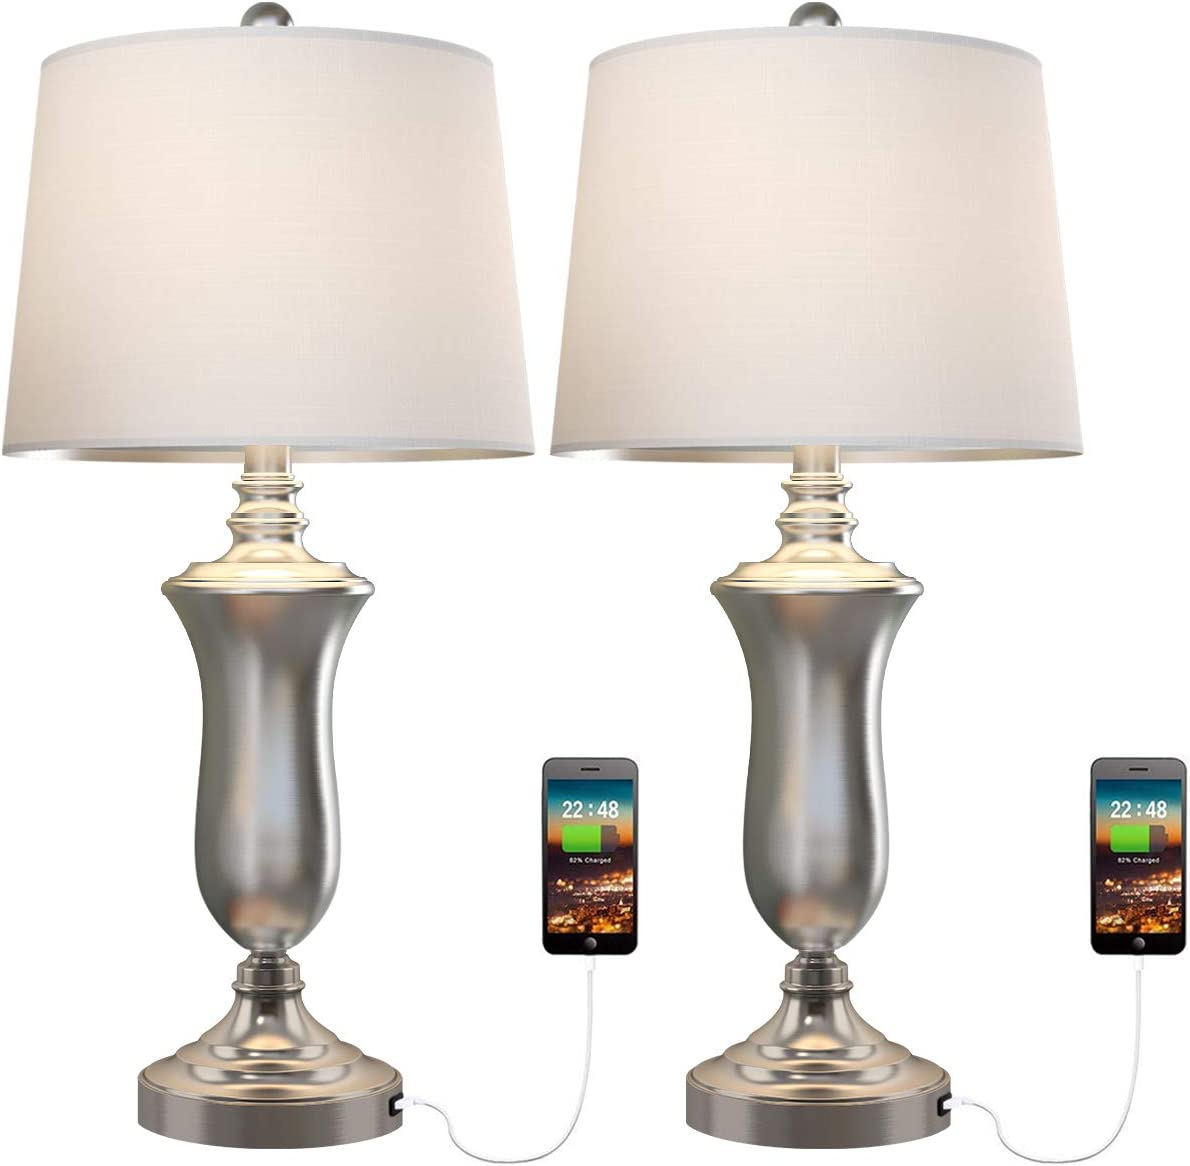 Amazon Com Oneach Modern Usb Table Lamp Set Of 2 For Living Room Bedroom Brush Steel 25 Bedside Nightstand Lamps With White Drum Shade Home Improvement